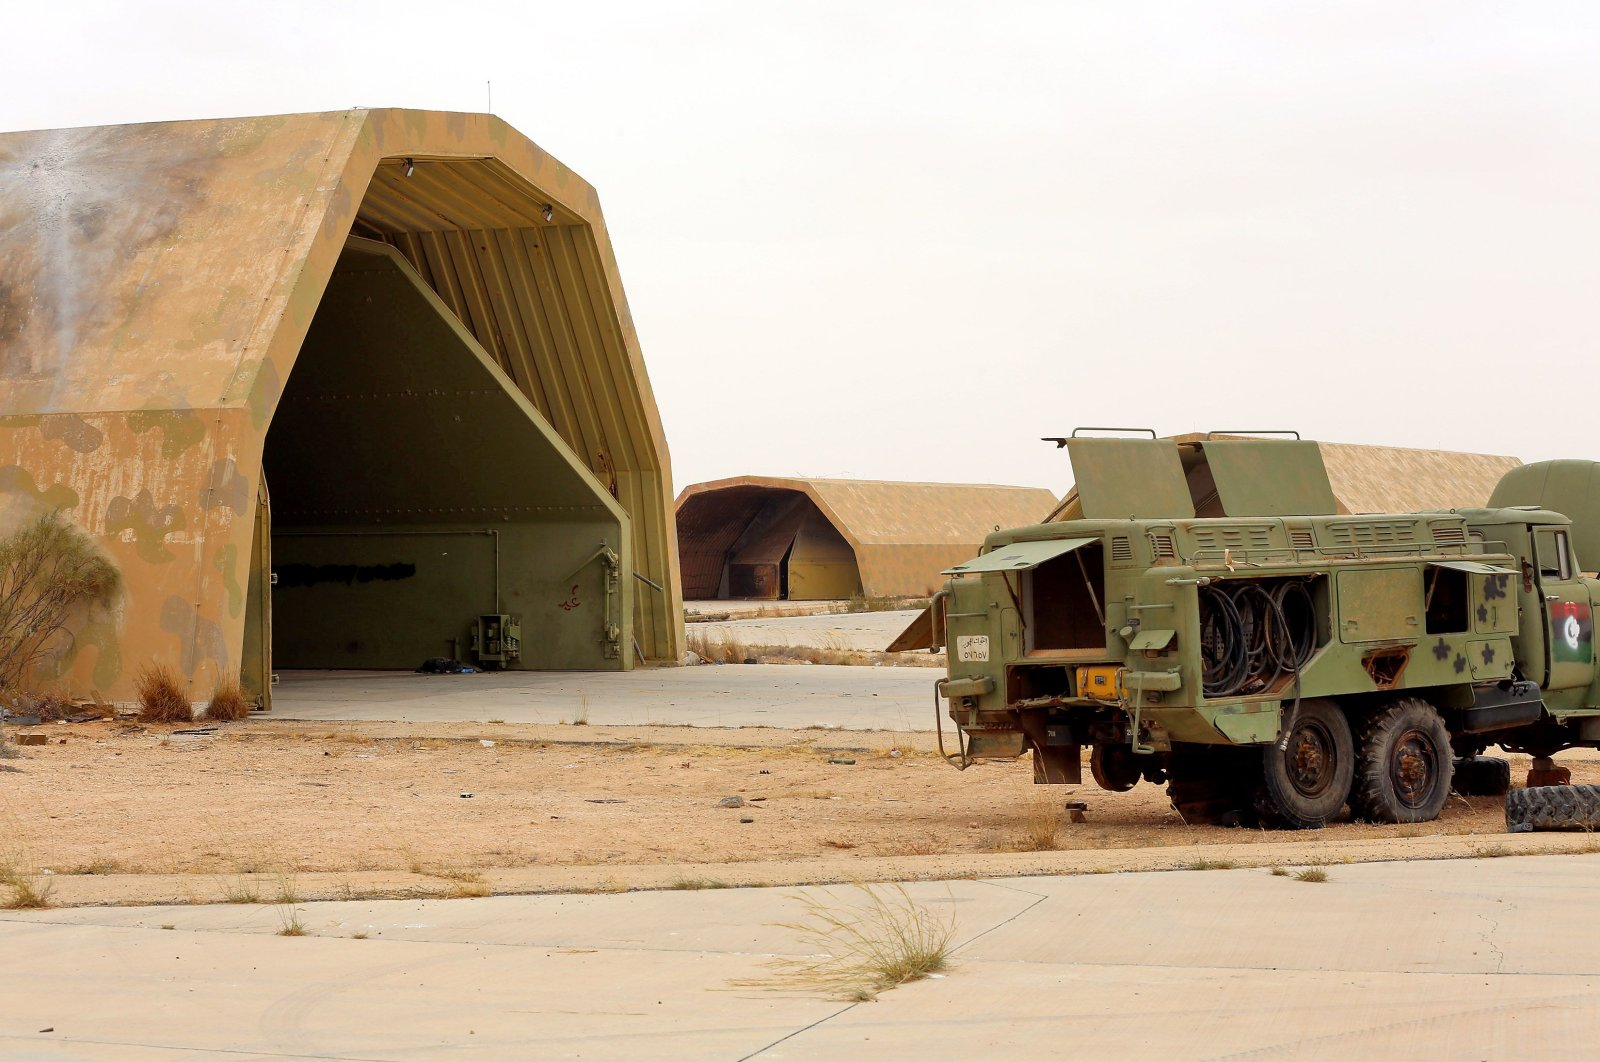 Vehicles are seen outside a hangar at al-Watiya air base, which was seized by forces loyal to Libya's U.N.-recognized Government of National Accord (GNA), southwest of the capital Tripoli, May 18, 2020. (AFP Photo)